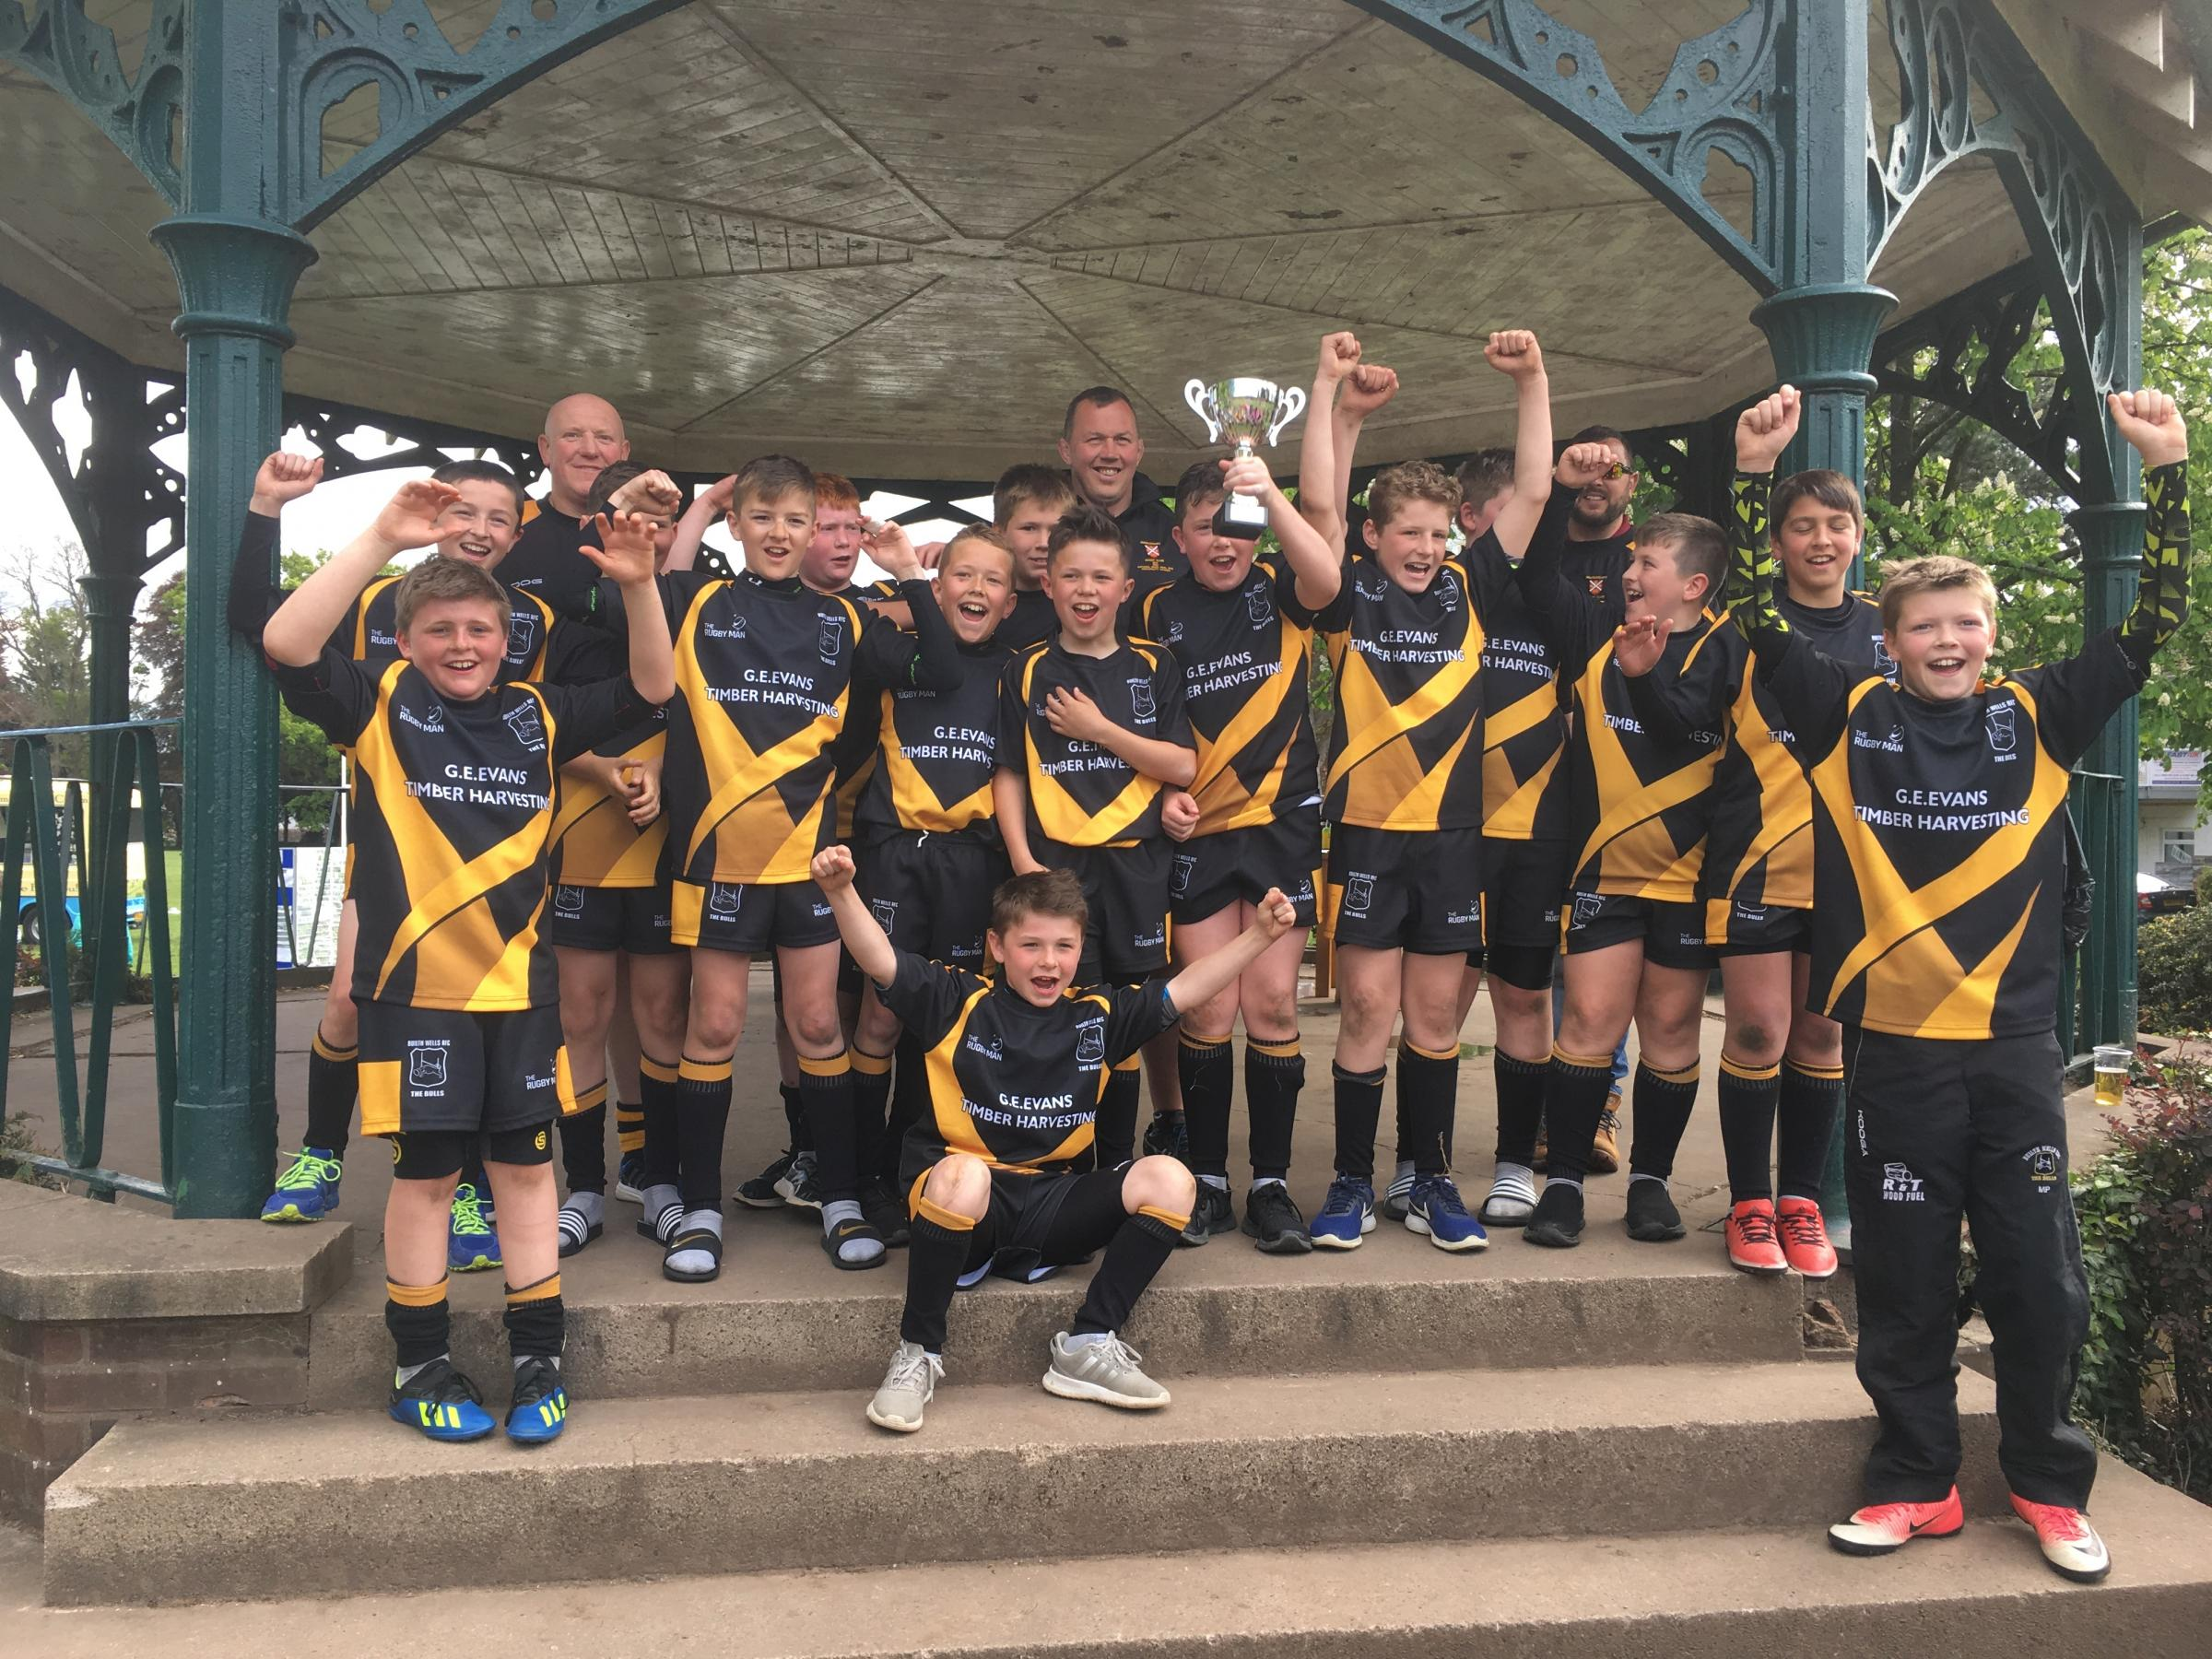 Builth Wells Under 12s with coach Garry Mason are (back from left) Caio Jones, Sam Williams, Lewis Bevan, Thomas Edwards, PJ Jones, Dominic Chew, Ceri Davies, Deri Mason, Sam Bridgewater, Tom Evans, George Morgan, Ben Evans-Williams (front) Ryan Jones, Ow